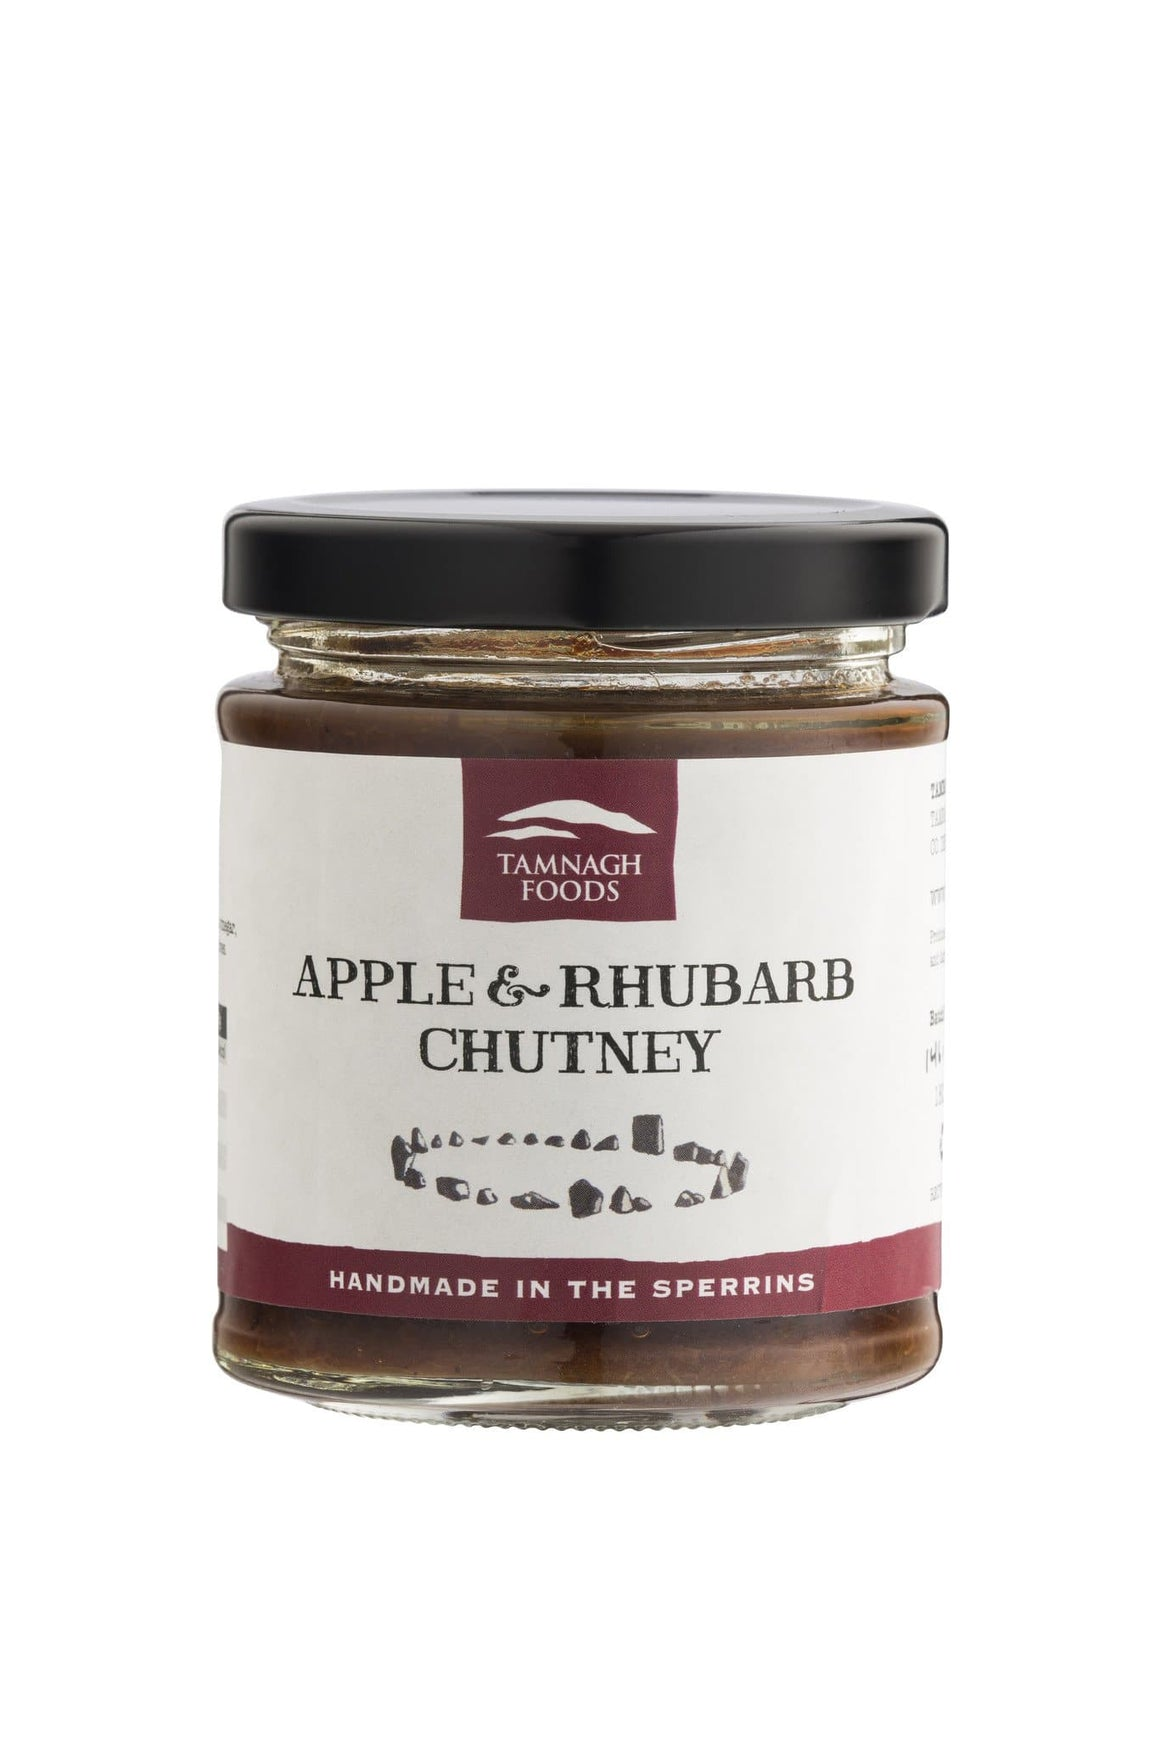 Tamnagh Foods Apple & Rhubarb Chutney 230G - SoulBia